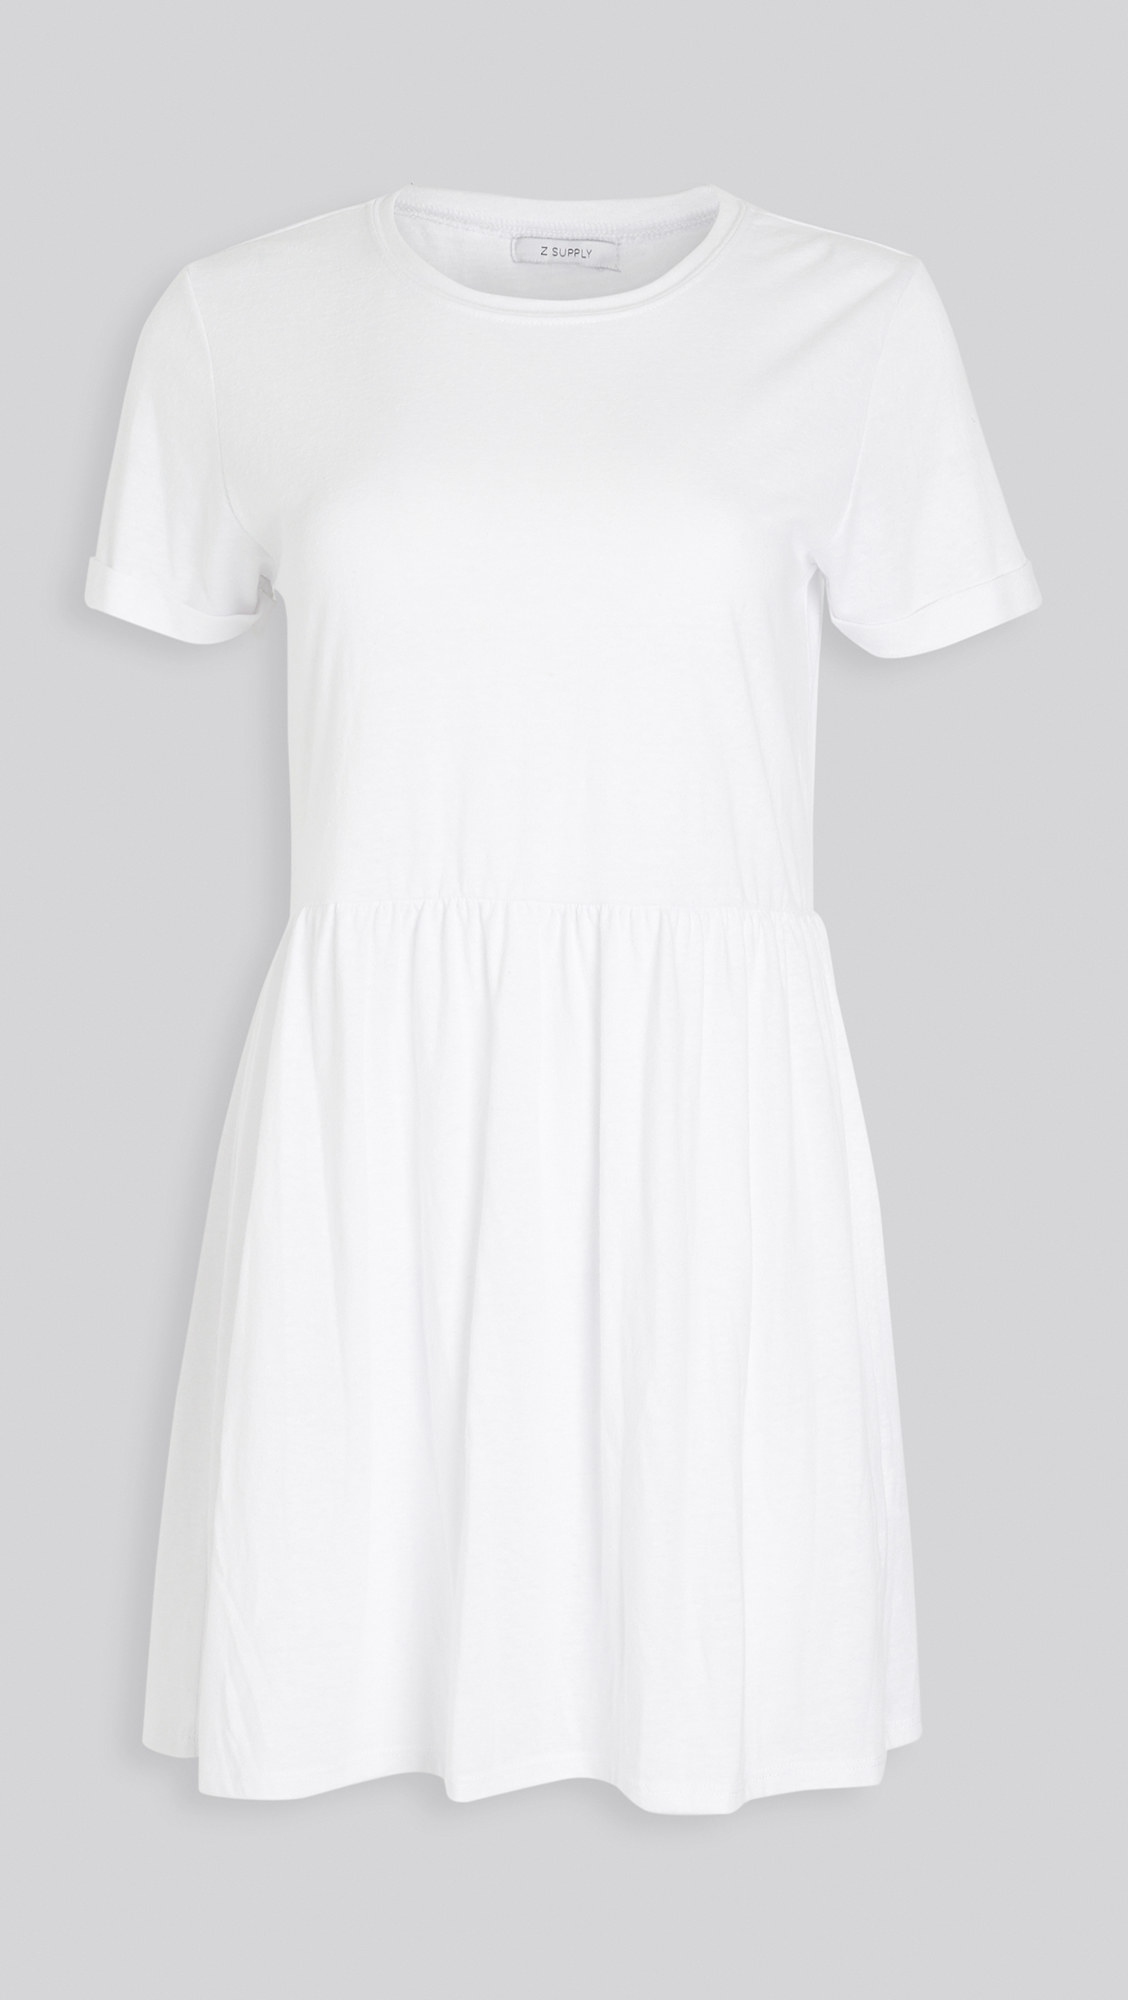 the white jersey knit dress with a crewneck cut and ciuffed T-shirt sleeves